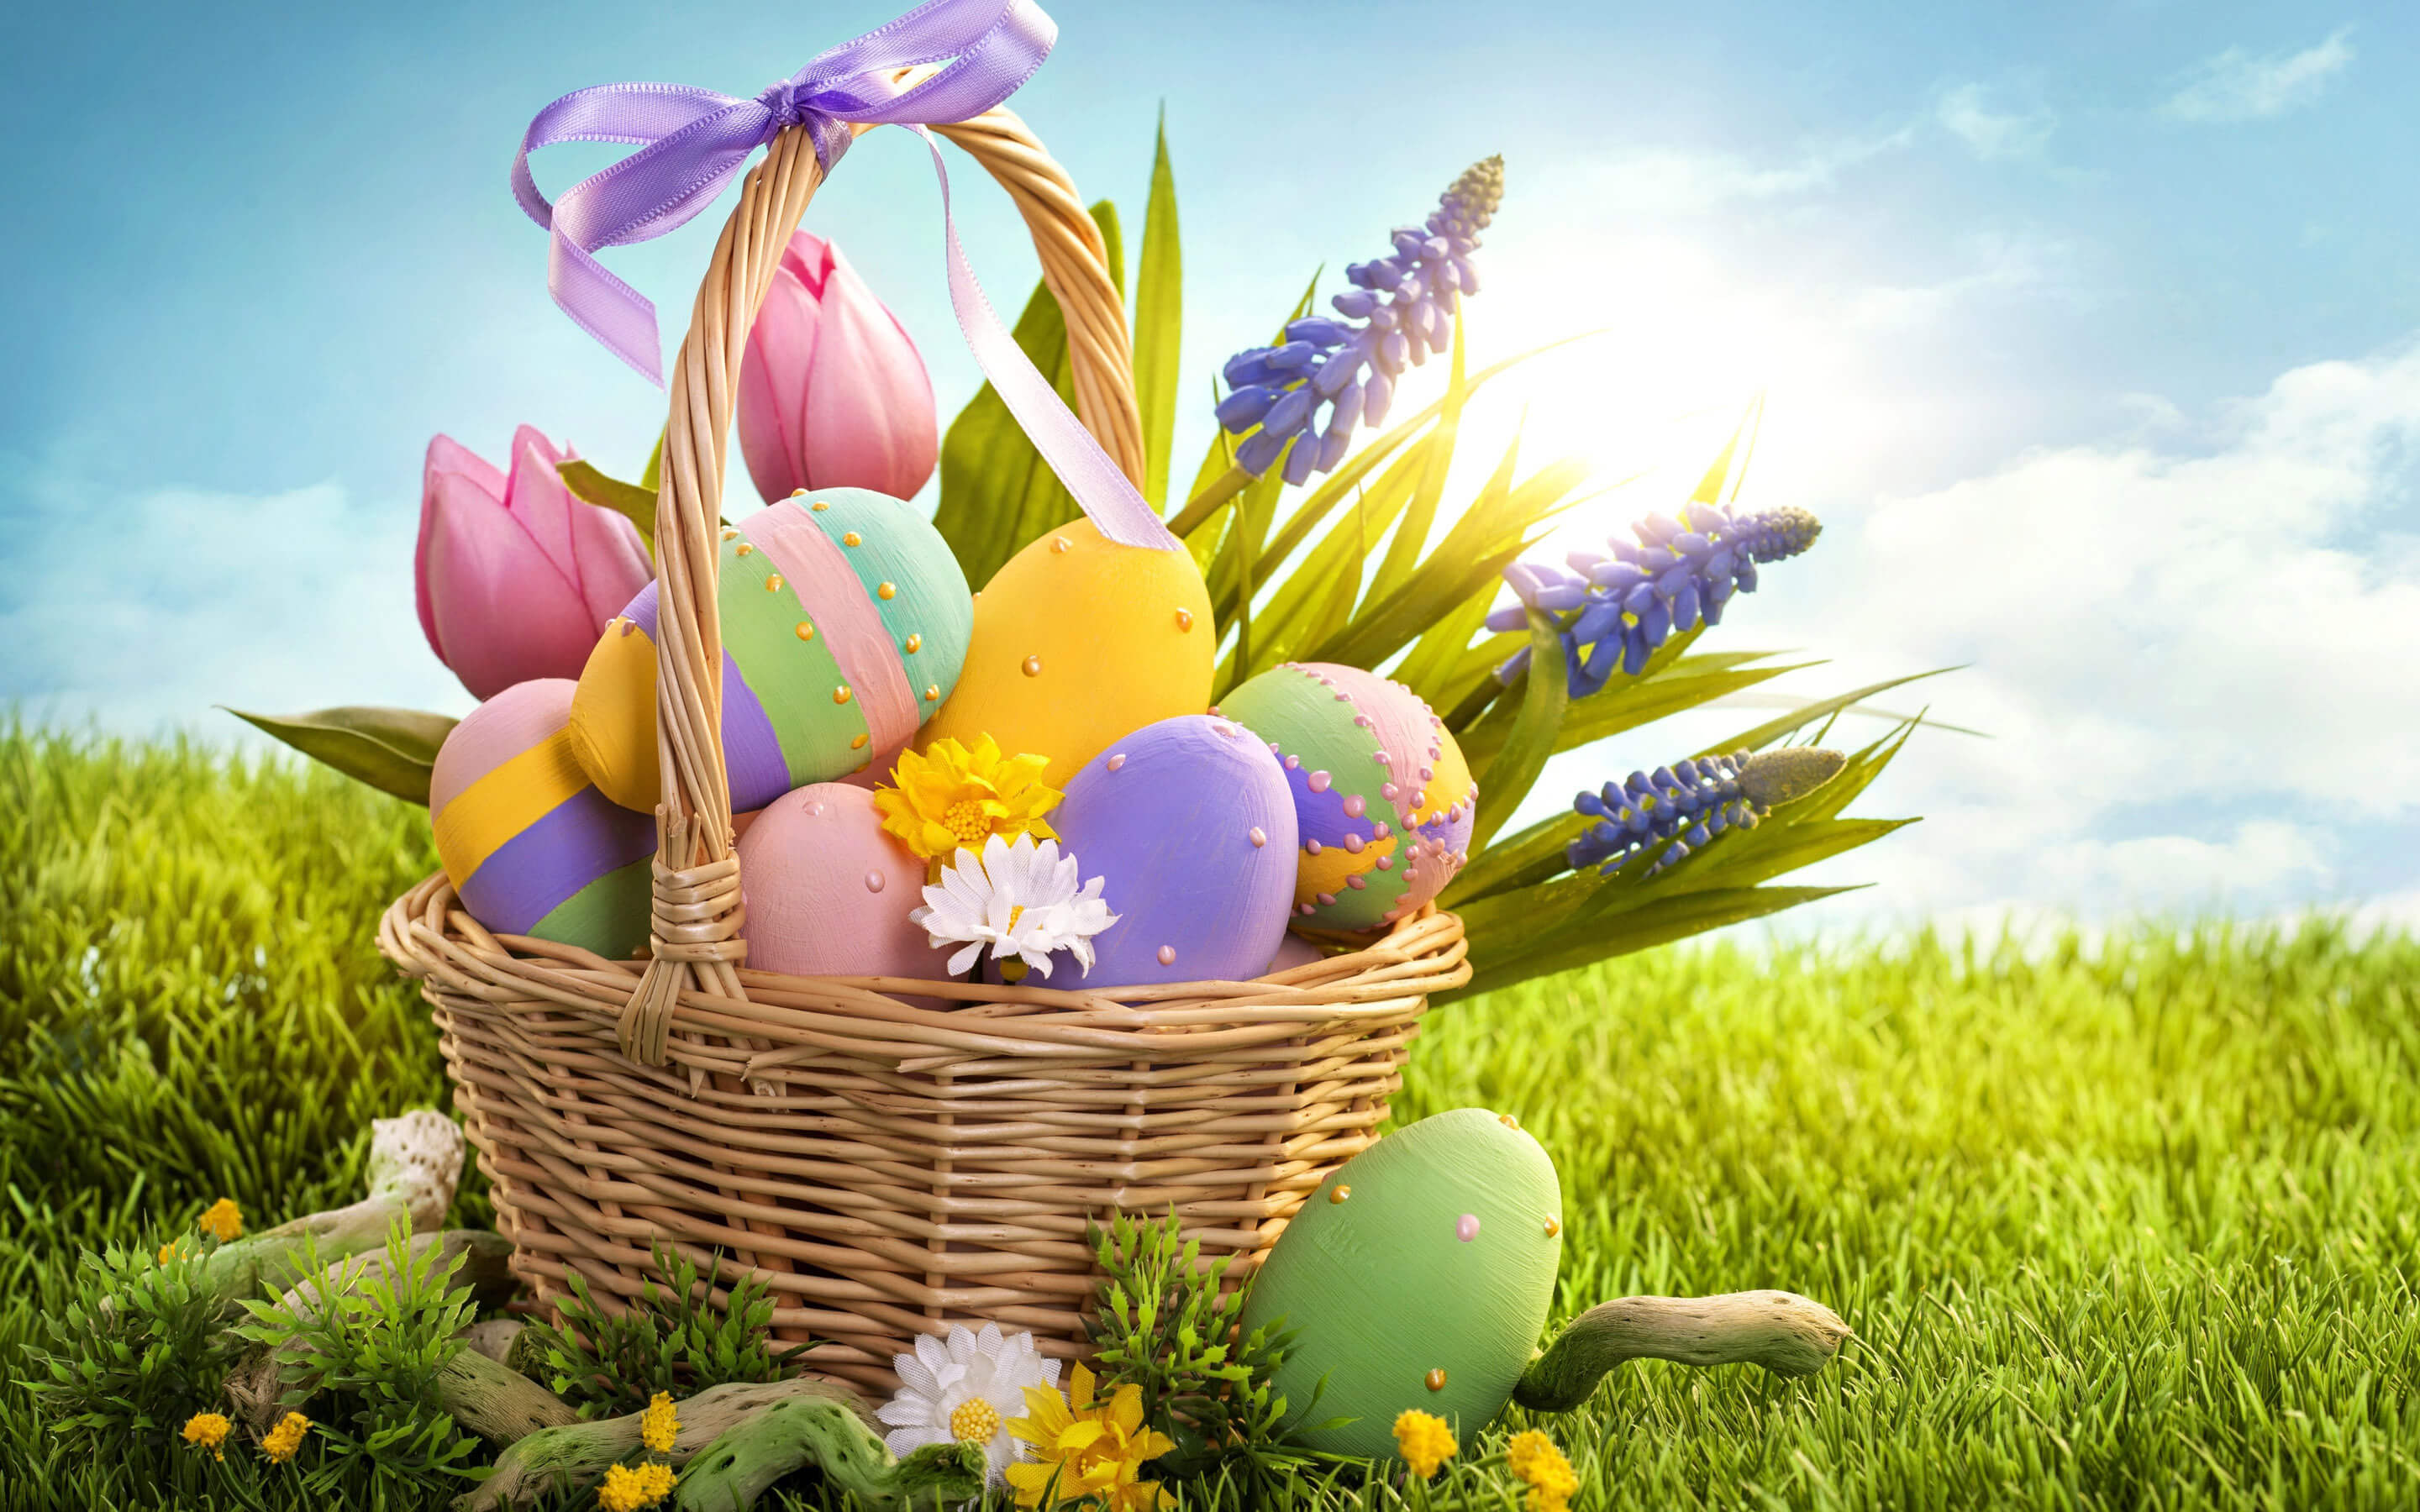 easter wallpaper hd free desktop